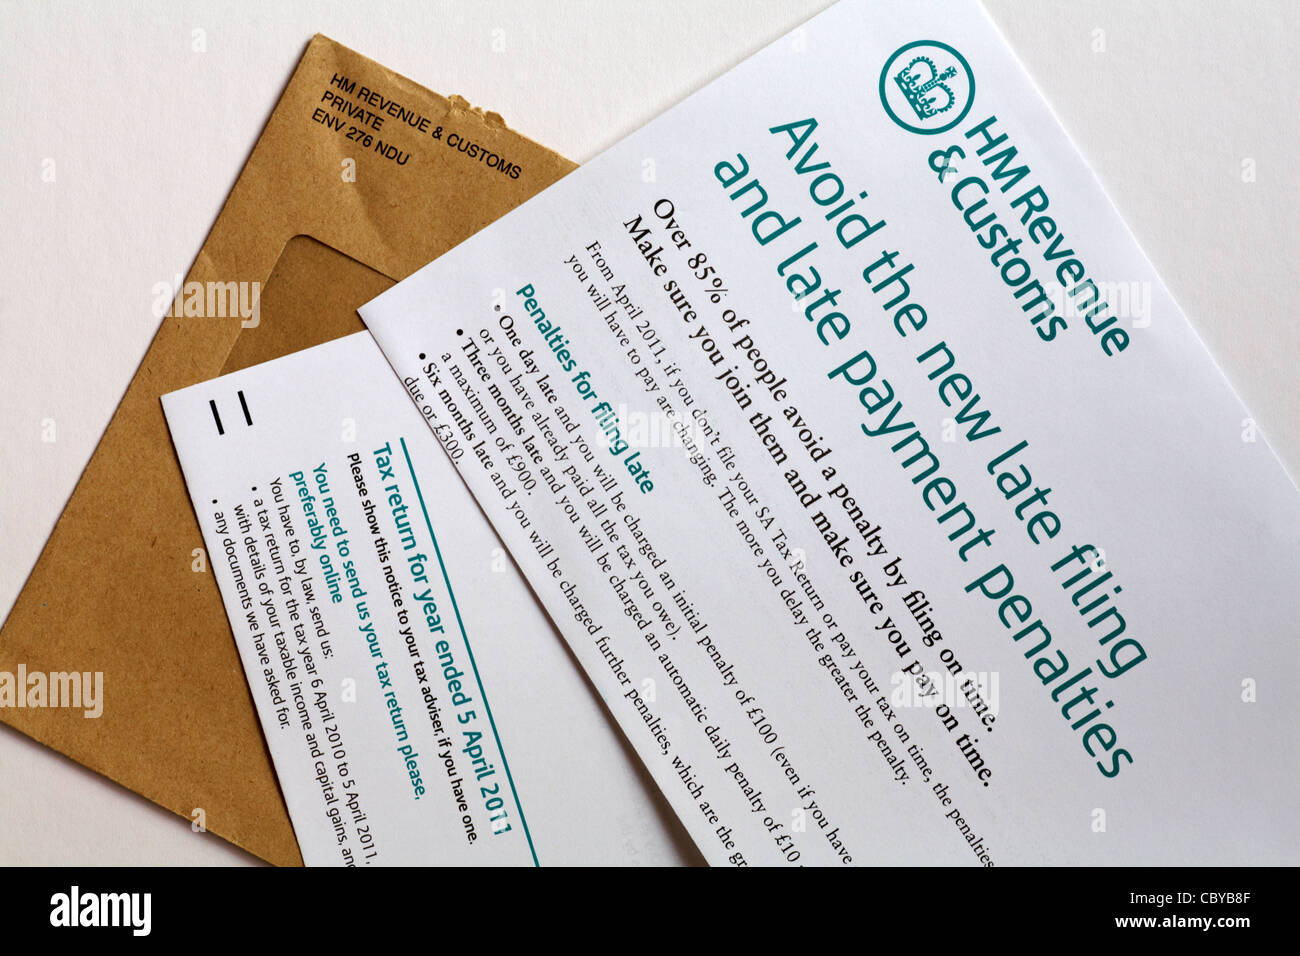 Reminder letter from HM Revenue & Customs warning of penalty fines for late return for tax return on white background Stock Photo